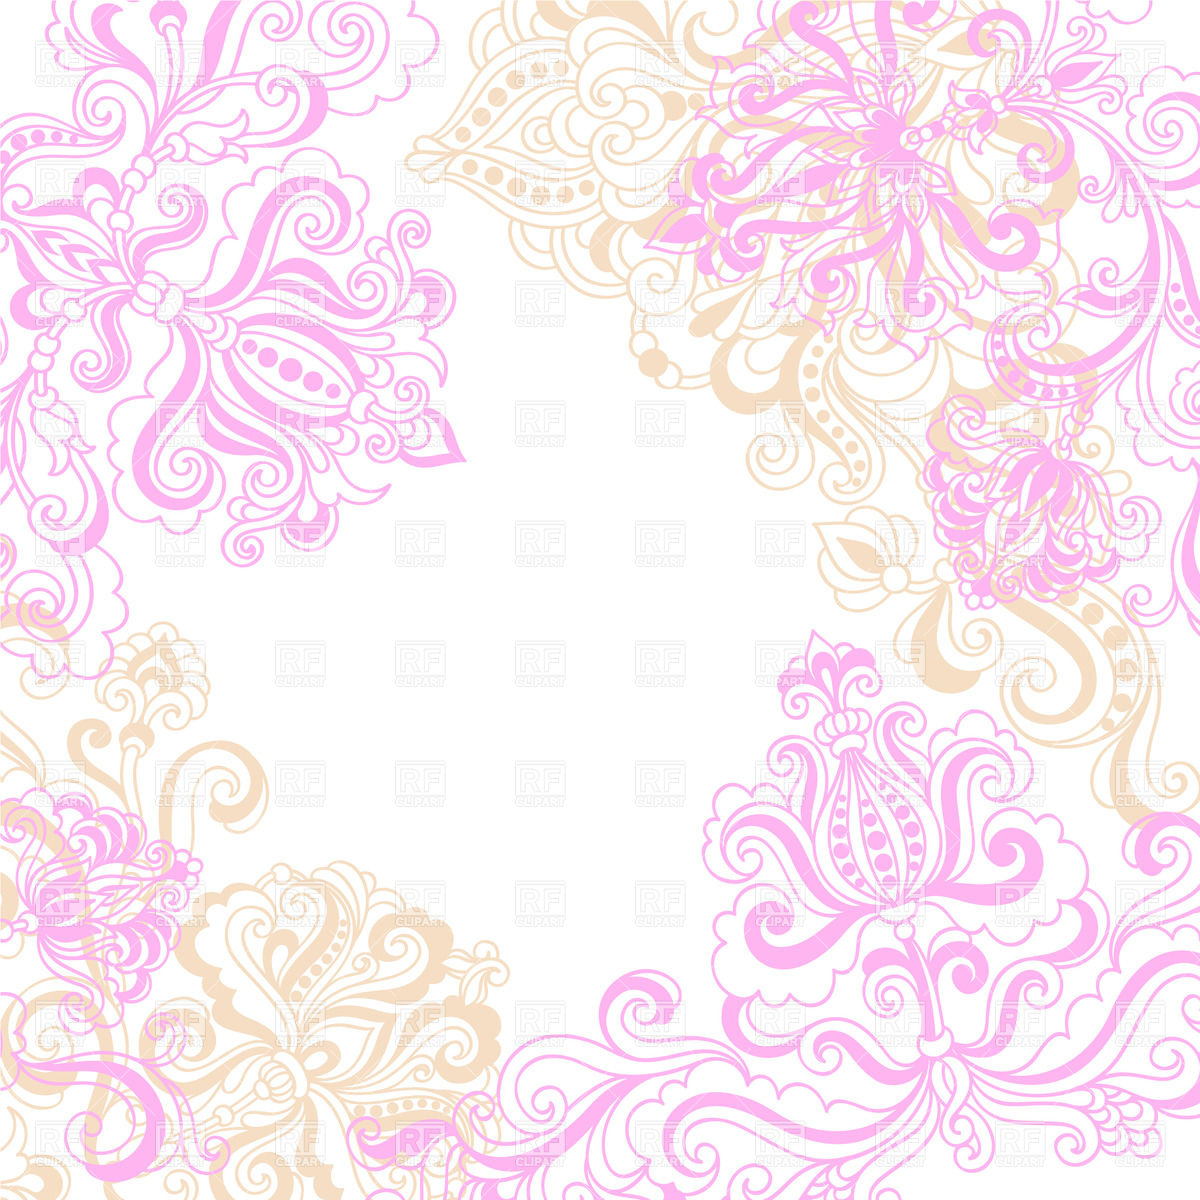 Pink background clipart #10